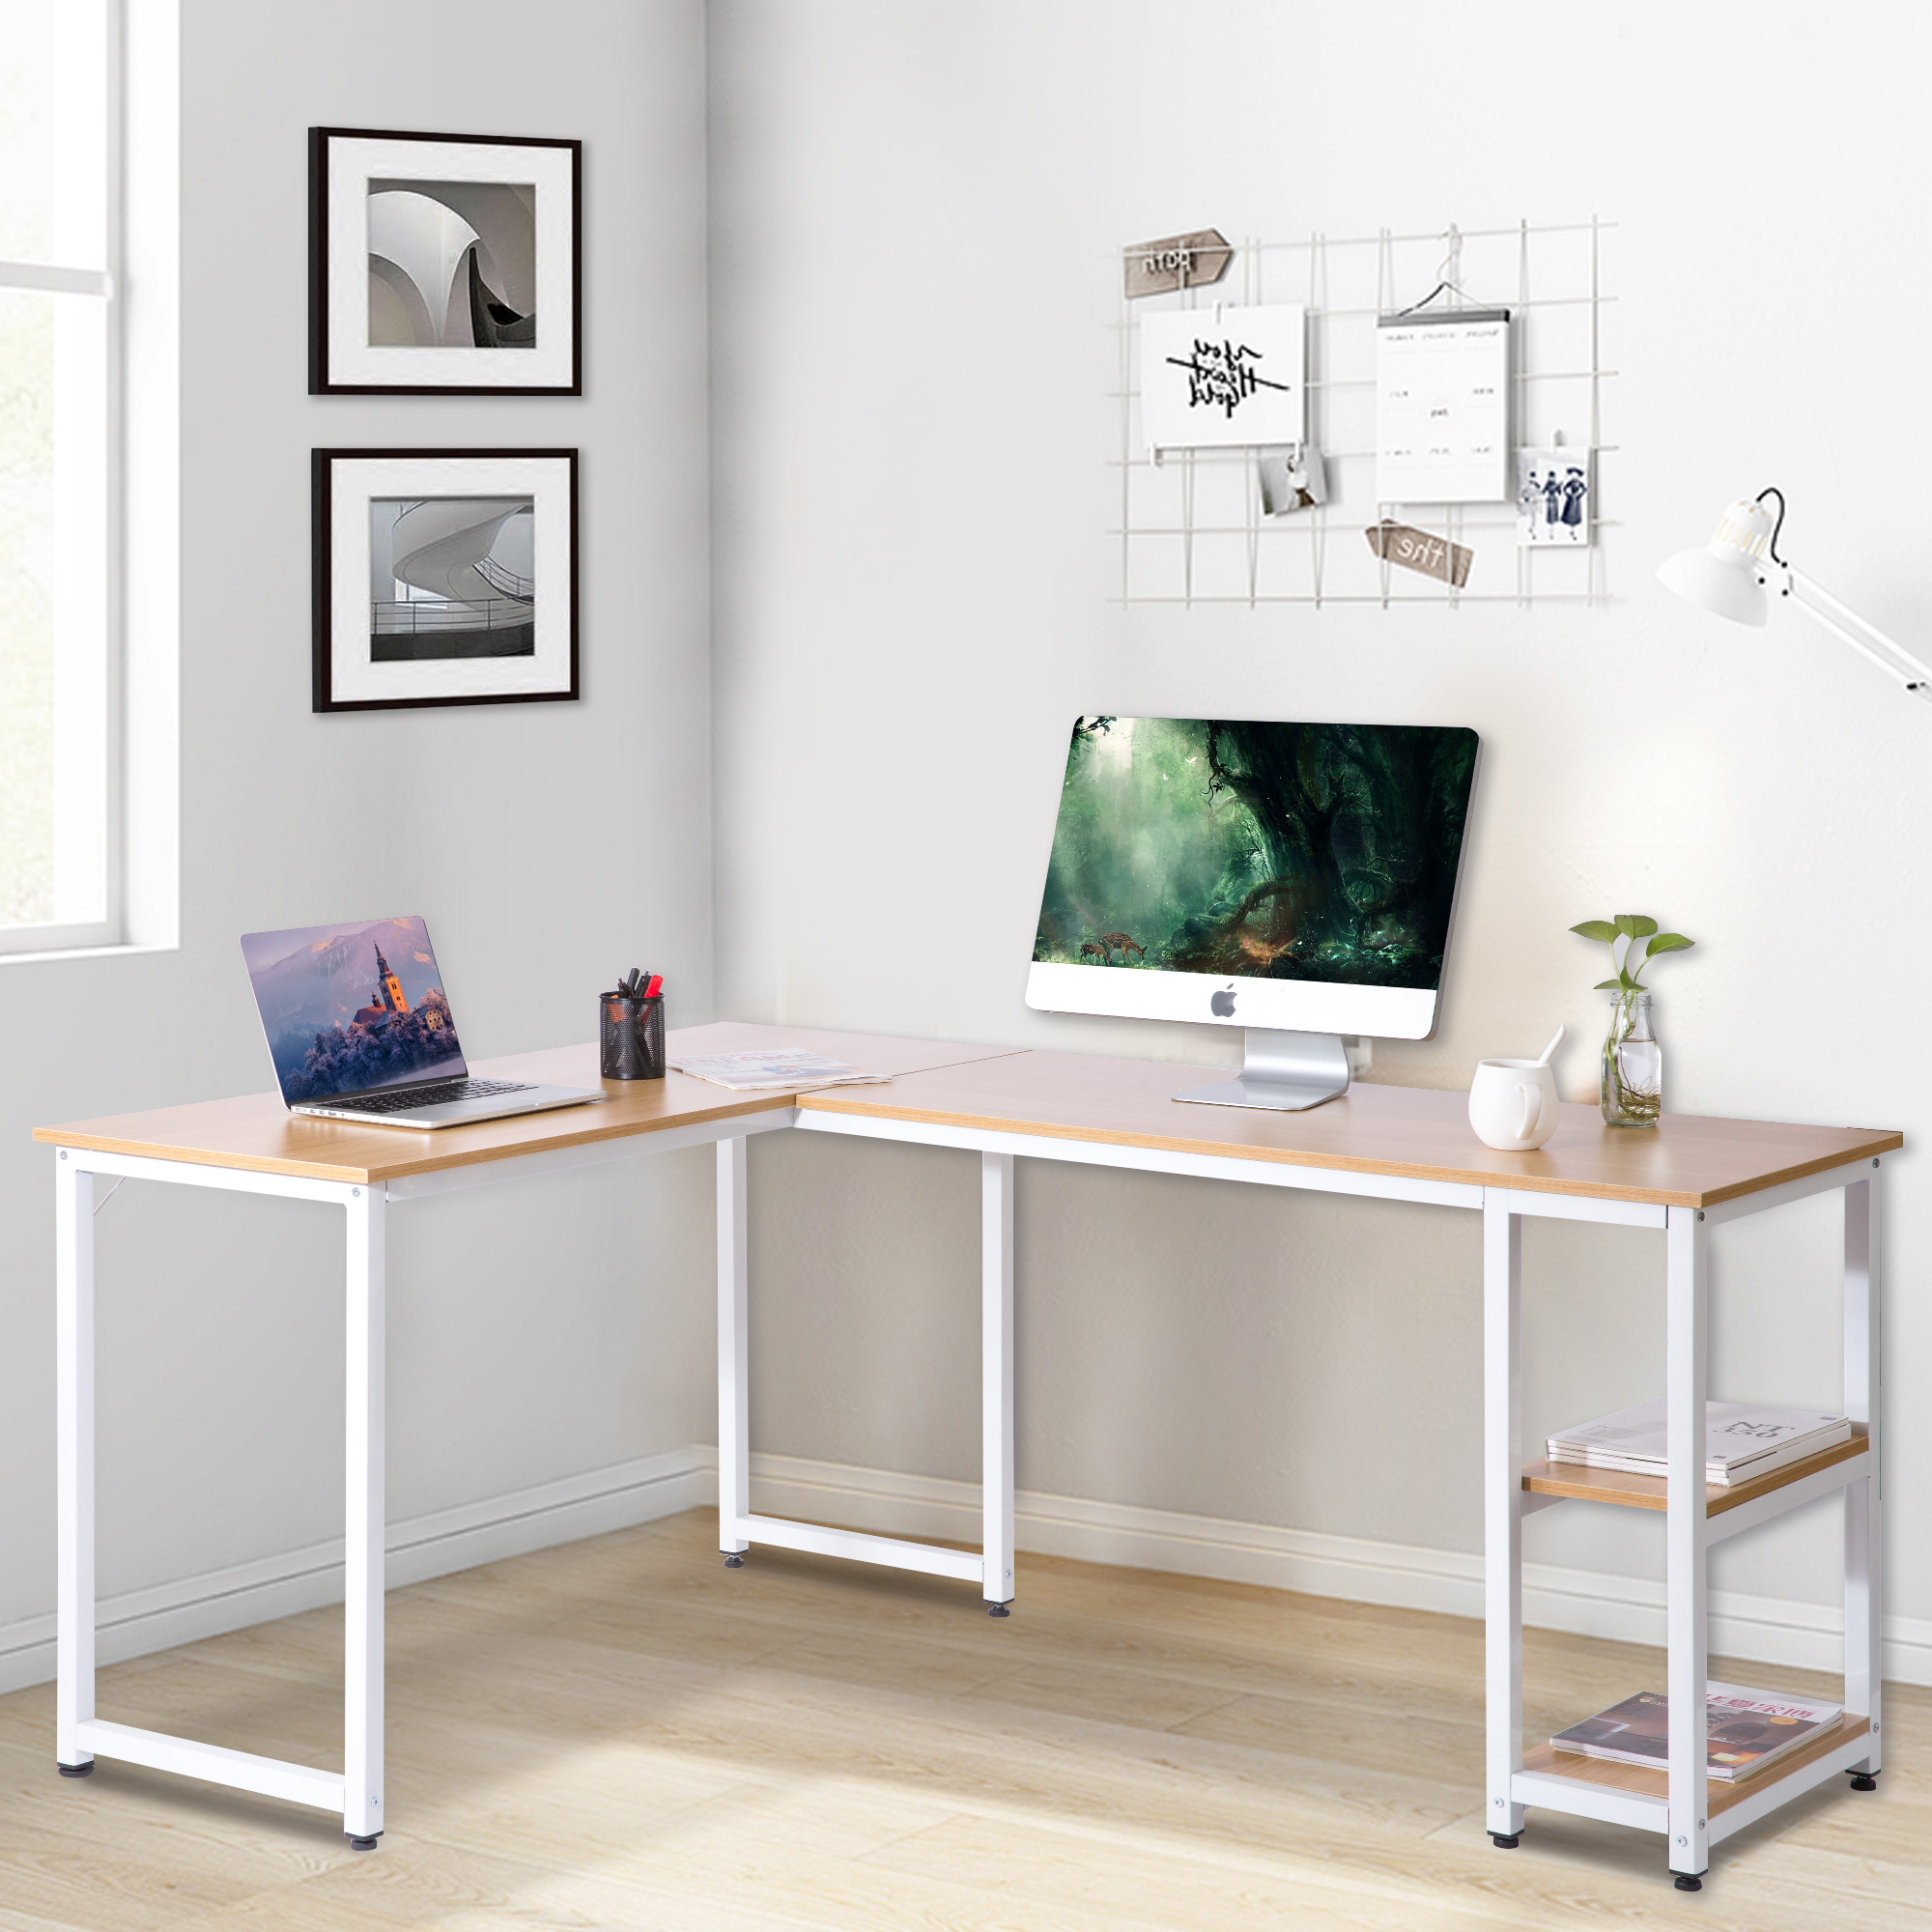 Modern Luxe L-Shaped Computer Desk with Side Storage Shelves,Oak